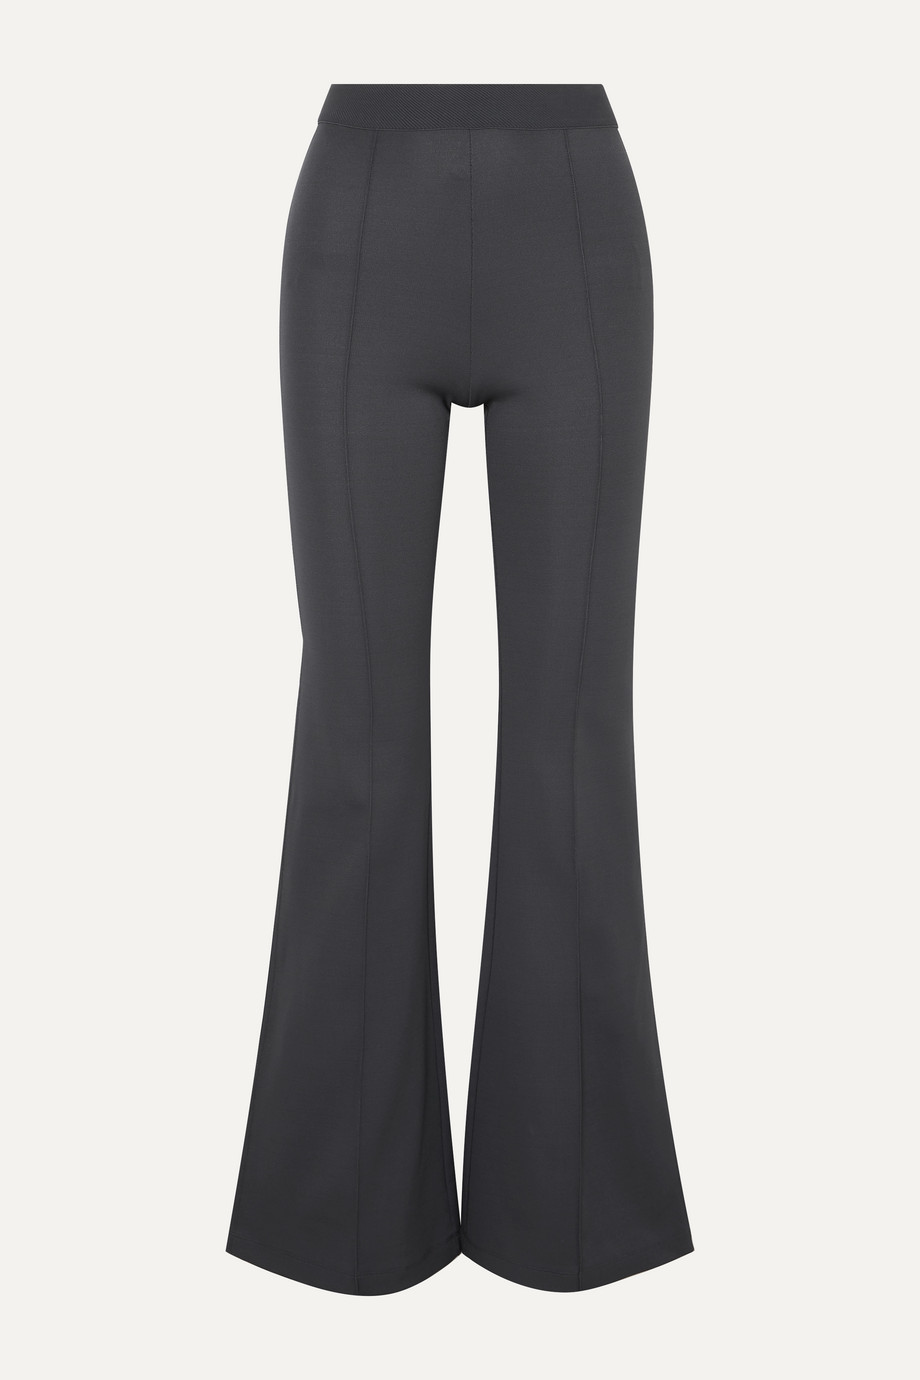 Stretch Manhattan Trousers by Gauge81, available on net-a-porter.com for $243 Selena Gomez Pants Exact Product